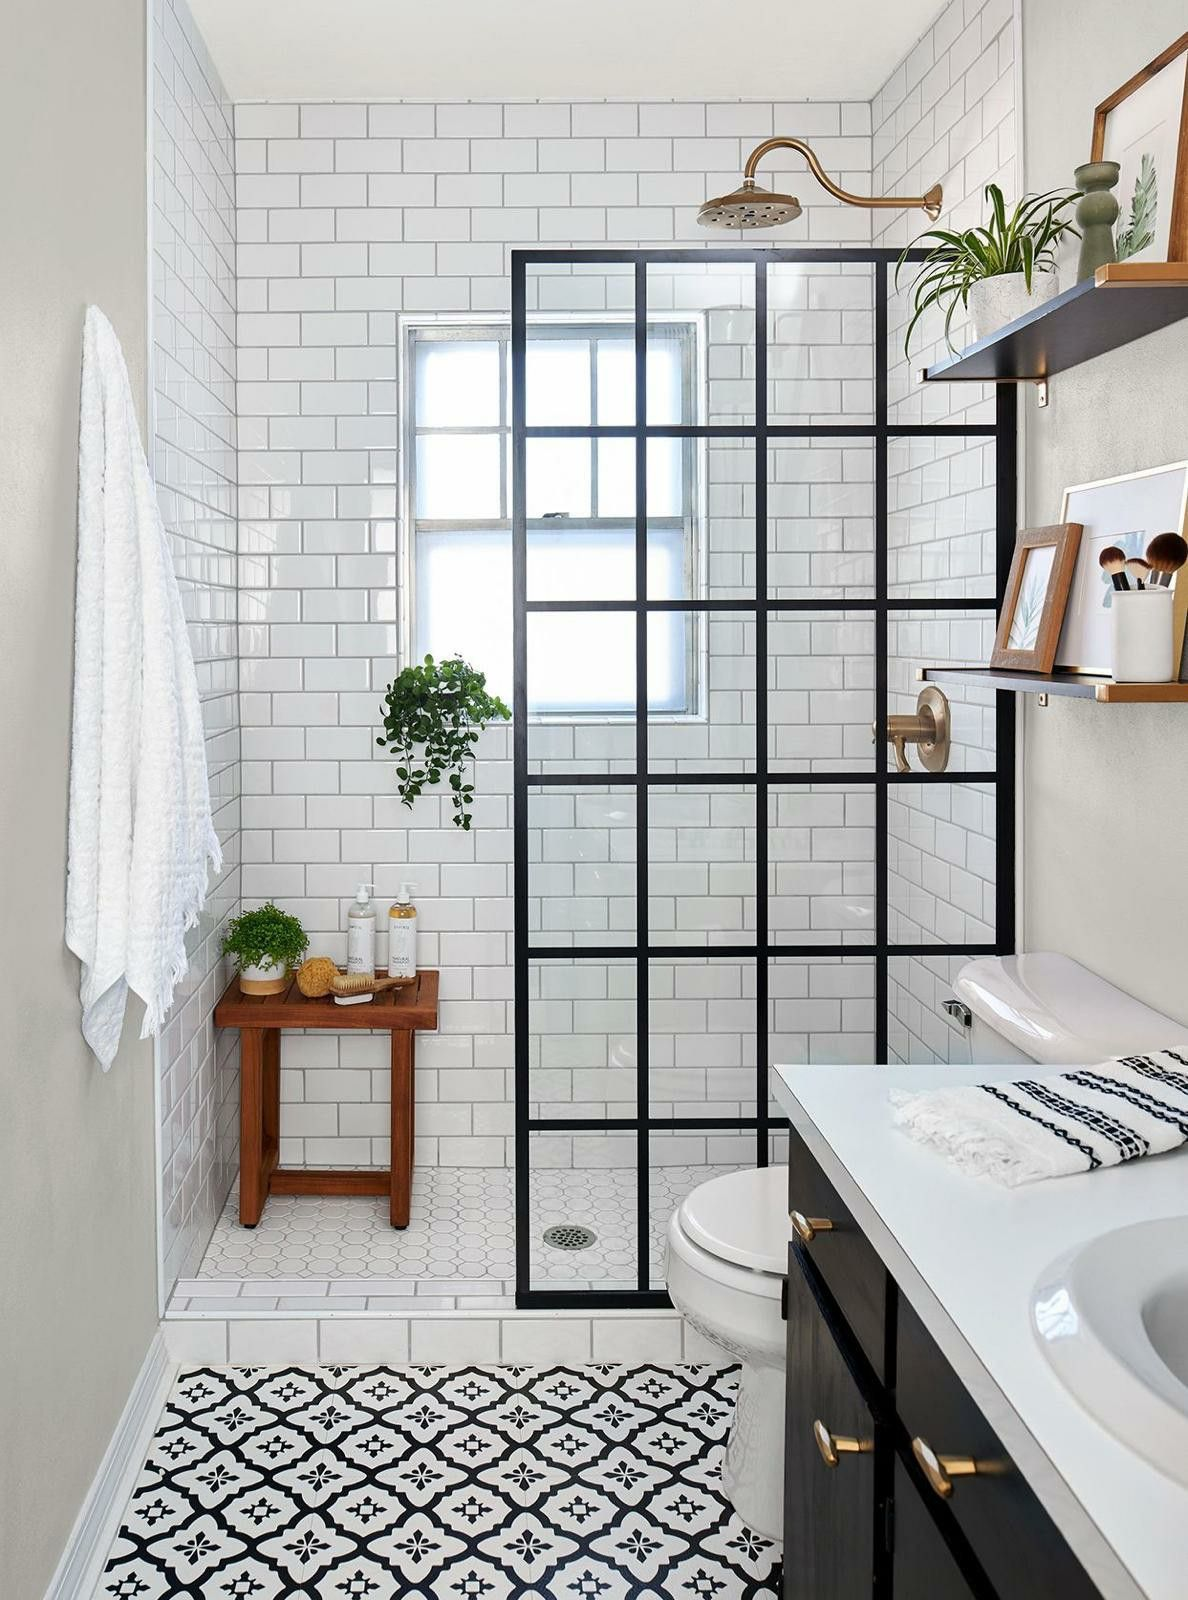 Pin By Noelle Duran On Deco In 2020 Small Bathroom Makeover Small Bathroom Remodel Diy Bathroom Remodel